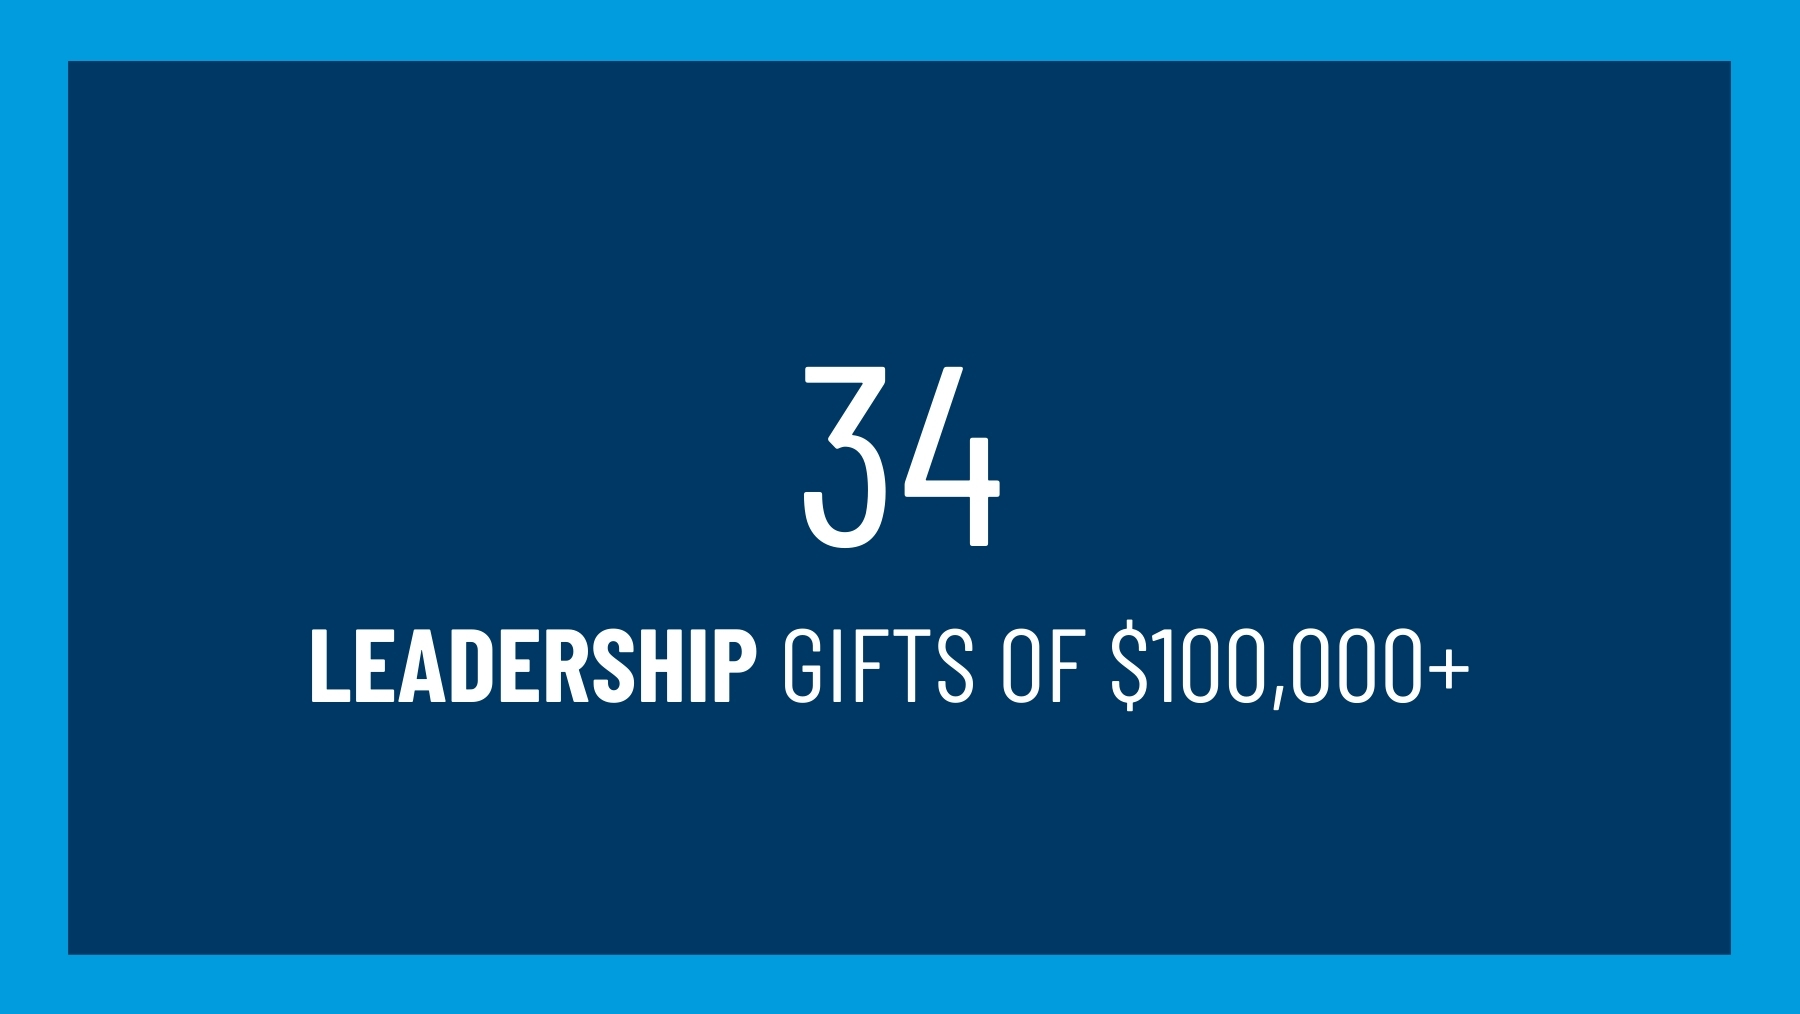 34 leadership gifts of $100,000+